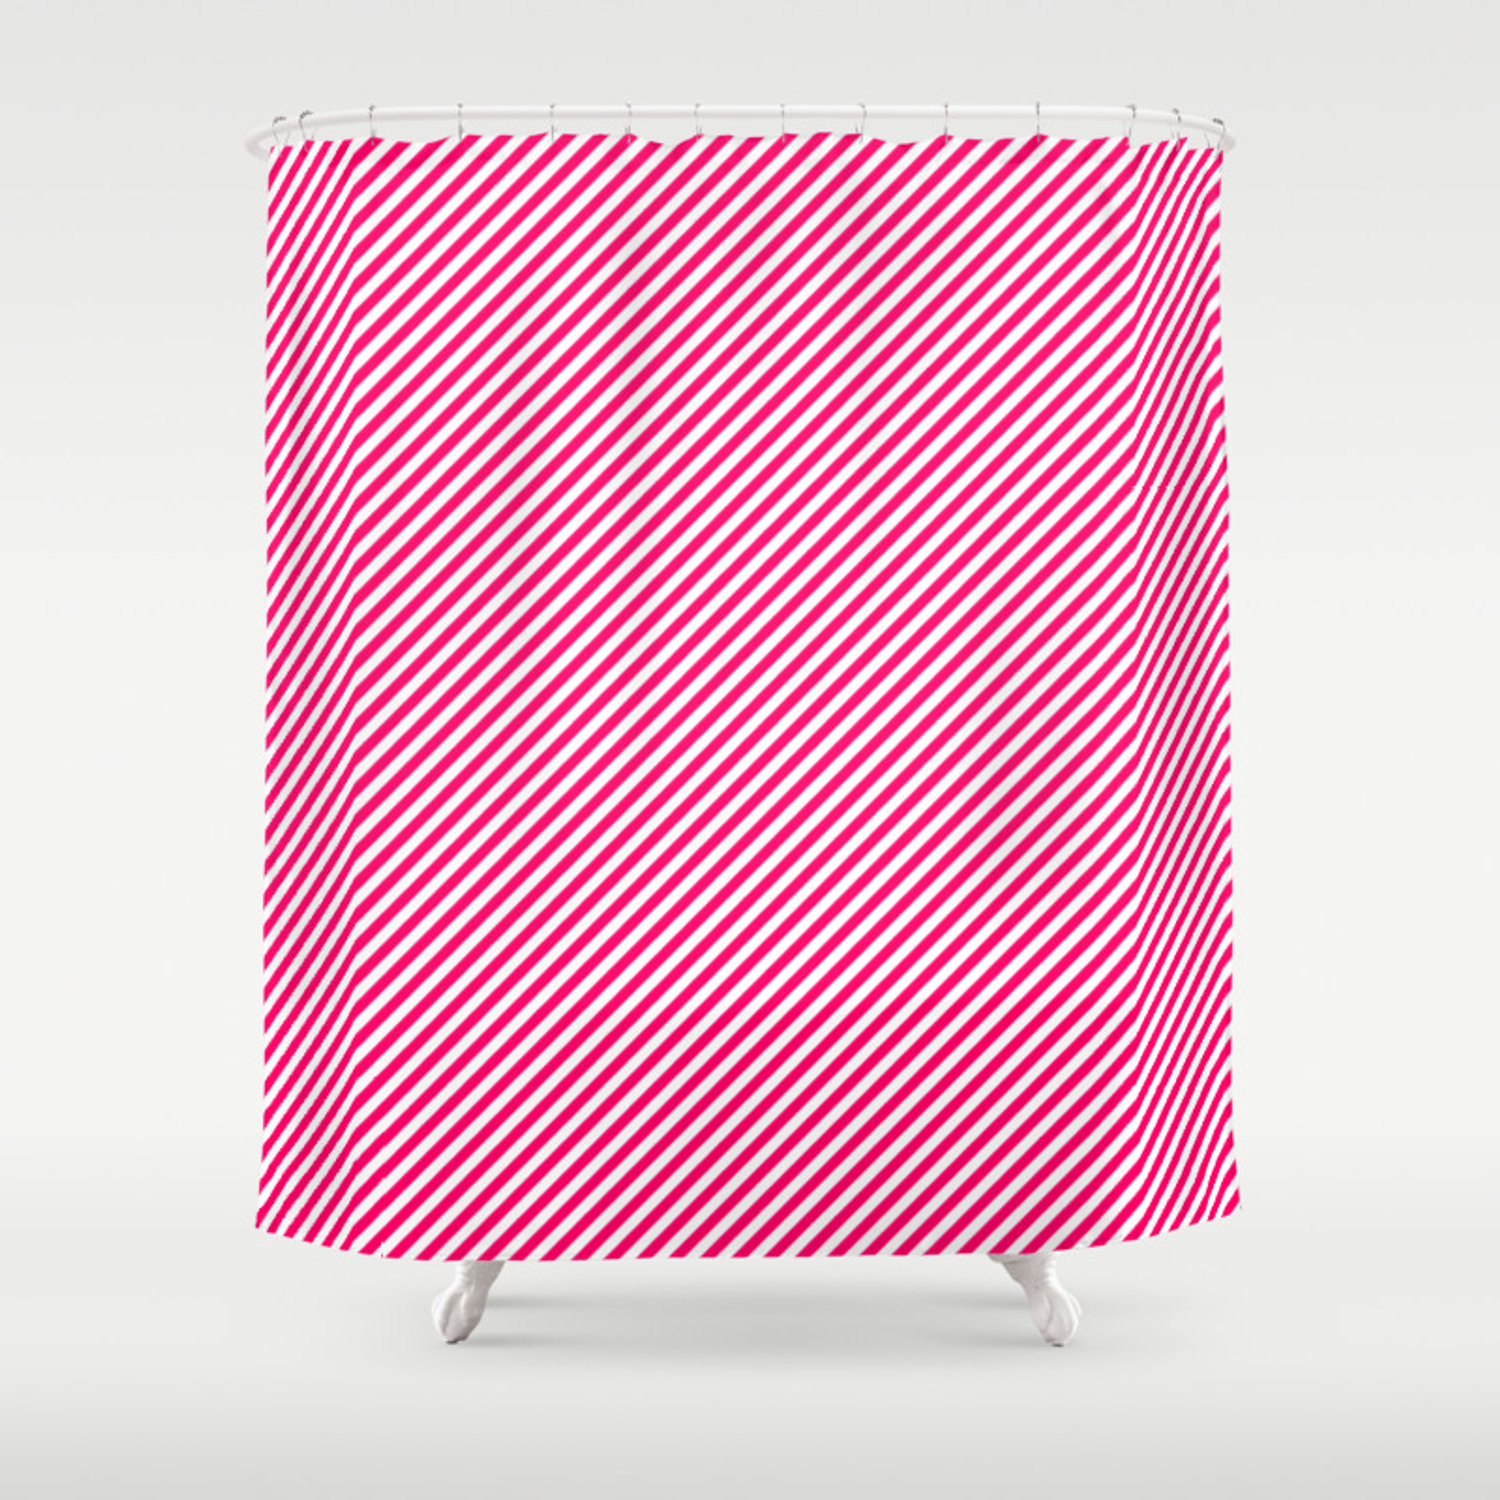 Mini Hot Neon Pink And White Candy Cane Stripes Shower Curtain